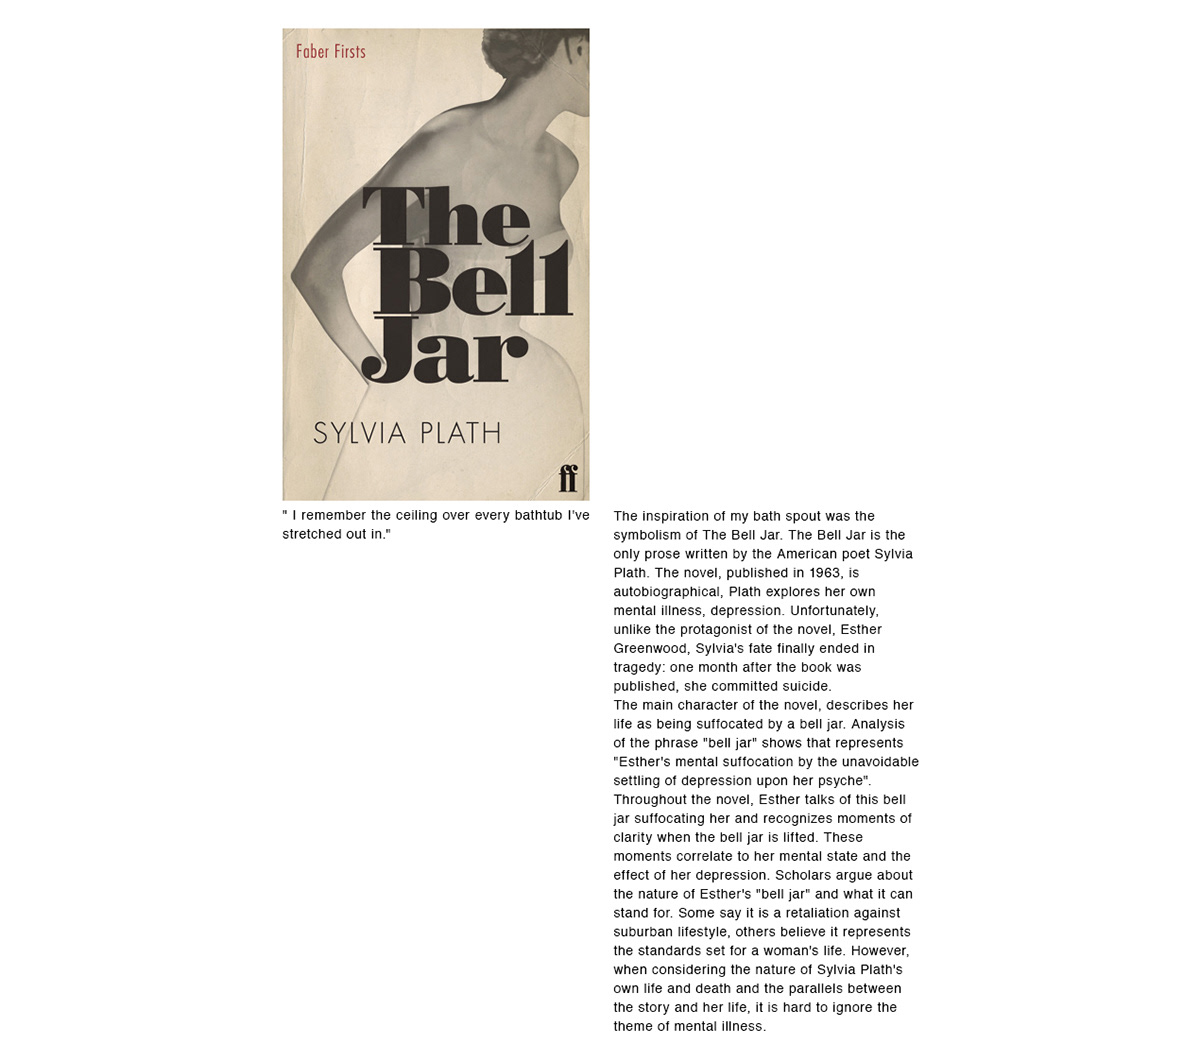 sylvia plath The Bell Jar Faucet bath spout bathing showerhead water bathroom mome LINE AND ROUND